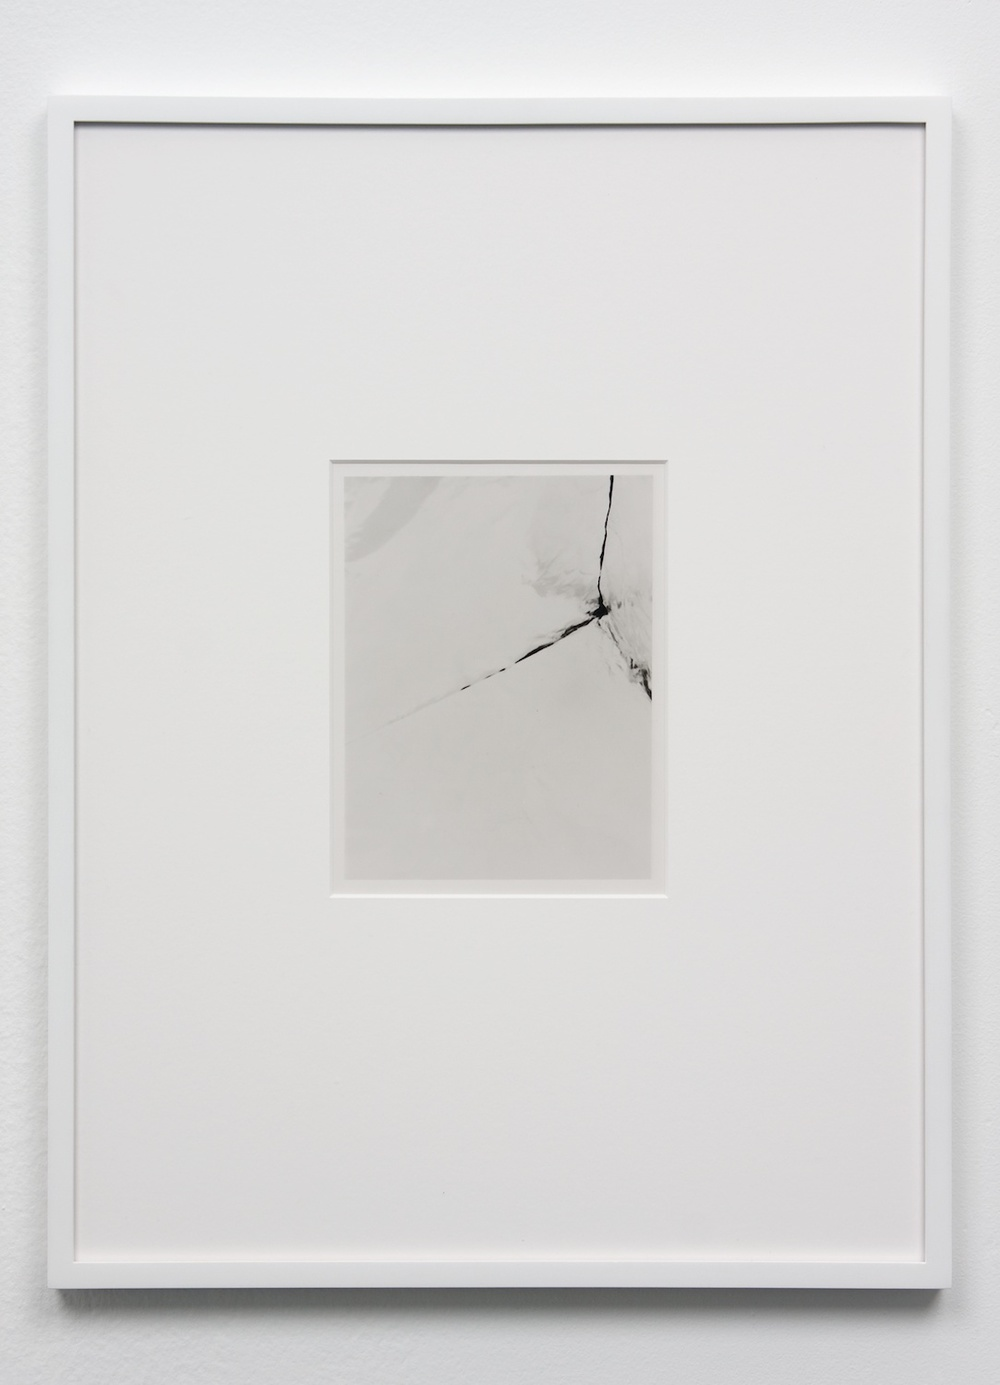 Anthony Pearson  Untitled (Solarization)  2010 Framed solarized silver gelatin photograph 17 ½h x 13 ¼w in AP238